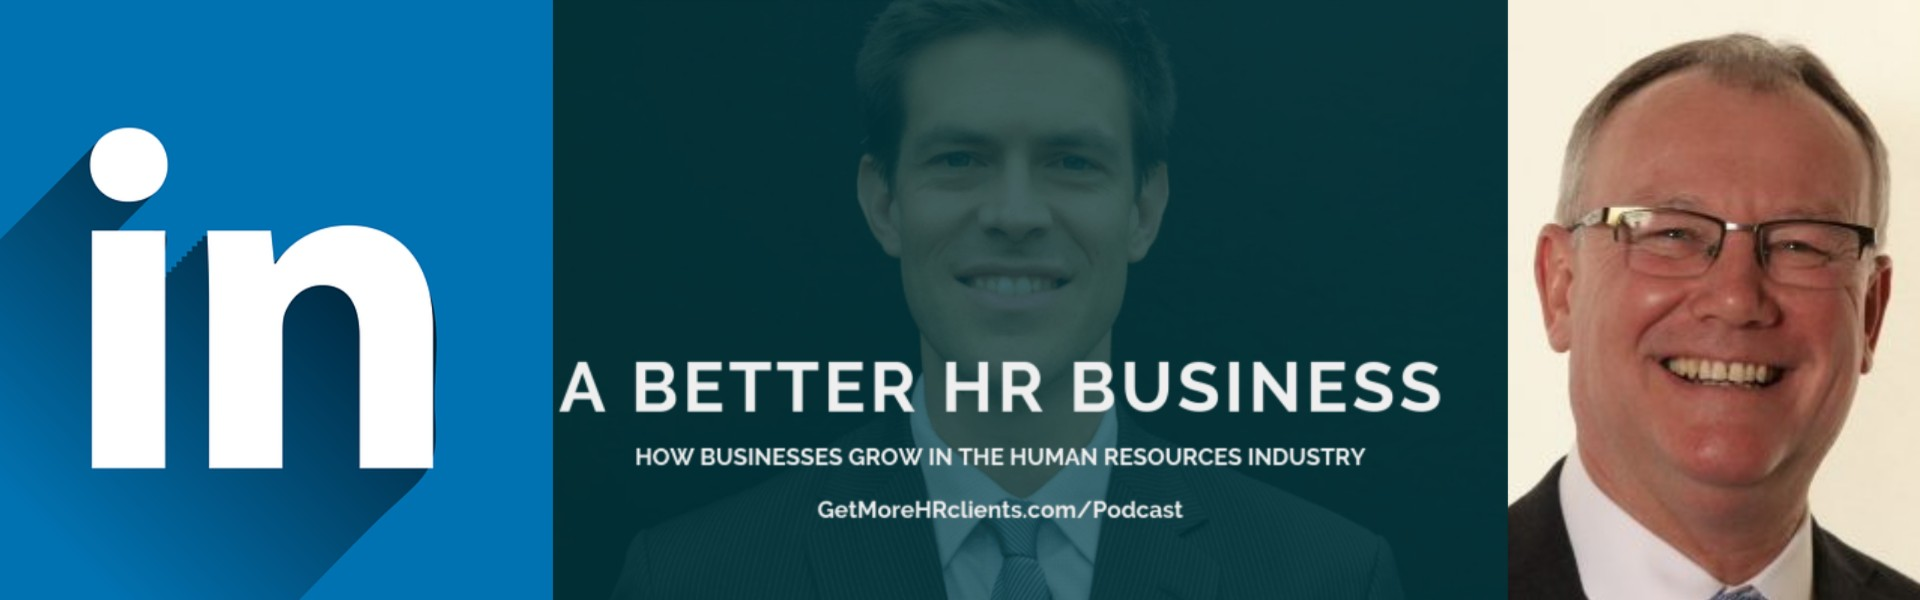 LinkedIn Best Practices, A Better HR Business podcast Nigel Cliffe interview